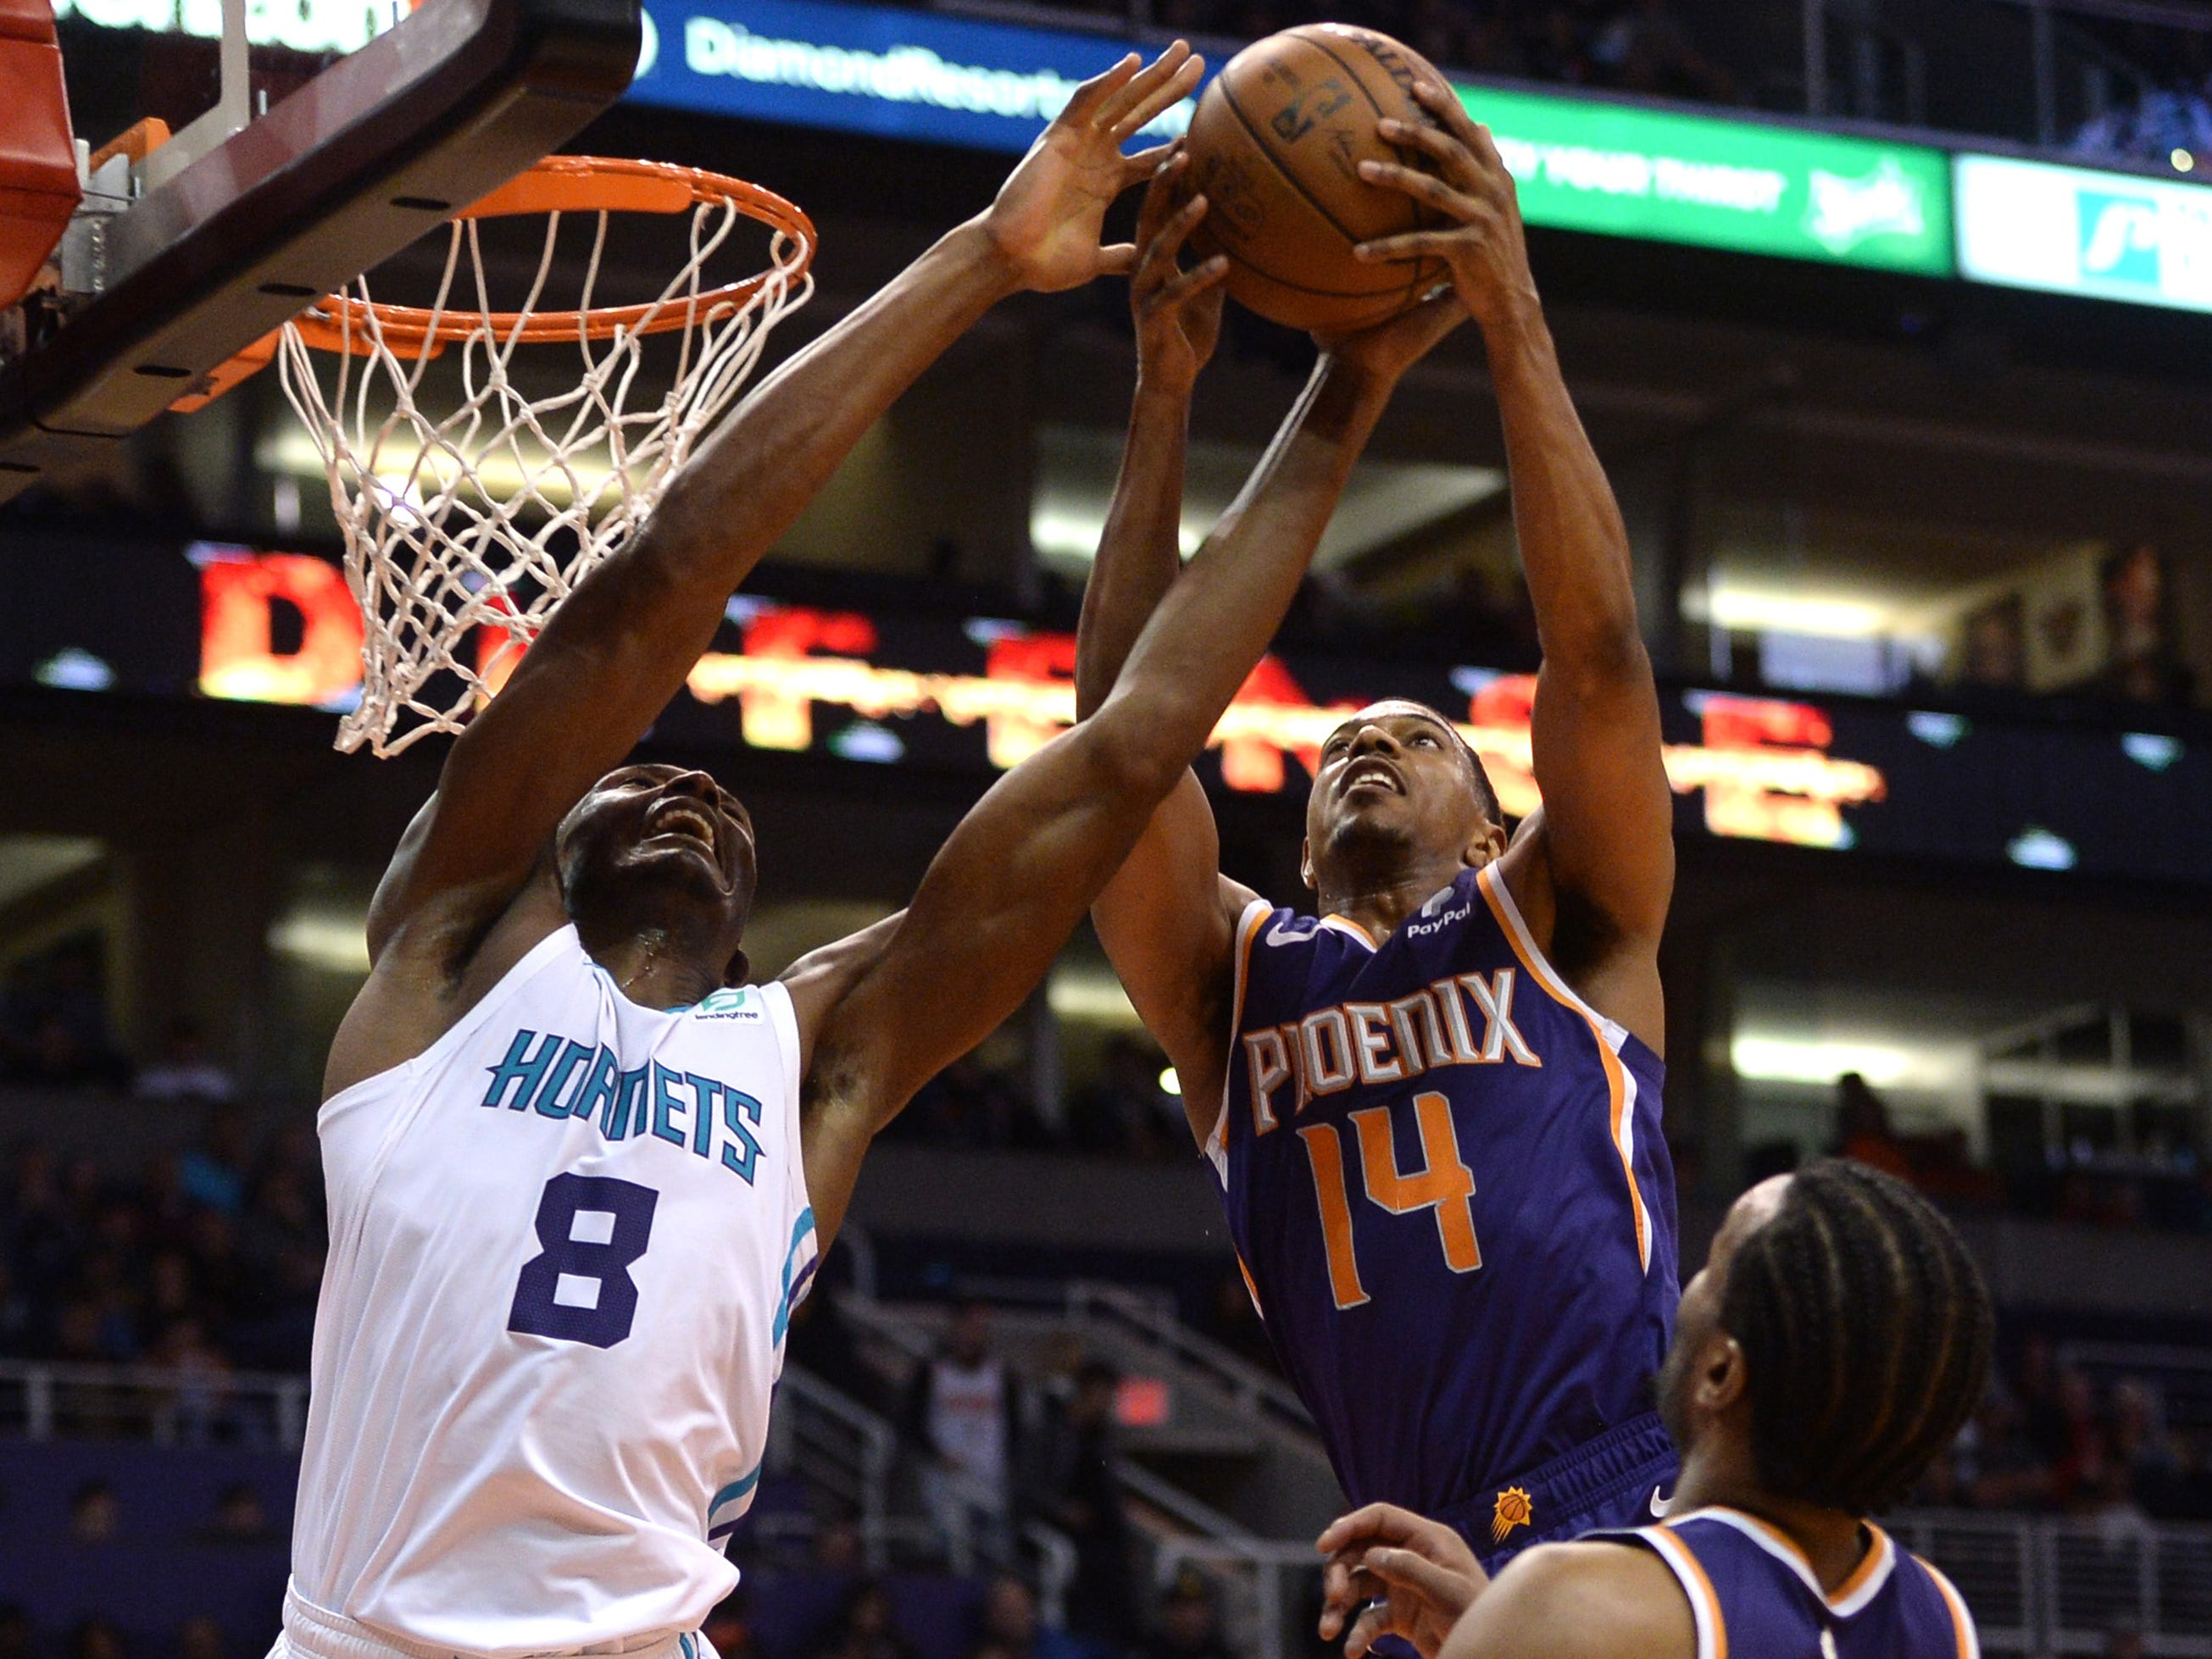 Jan. 6: Hornets center Bismack Biyombo (8) fights for a rebound against Suns guard De'Anthony Melton (14) during the second half in Phoenix.